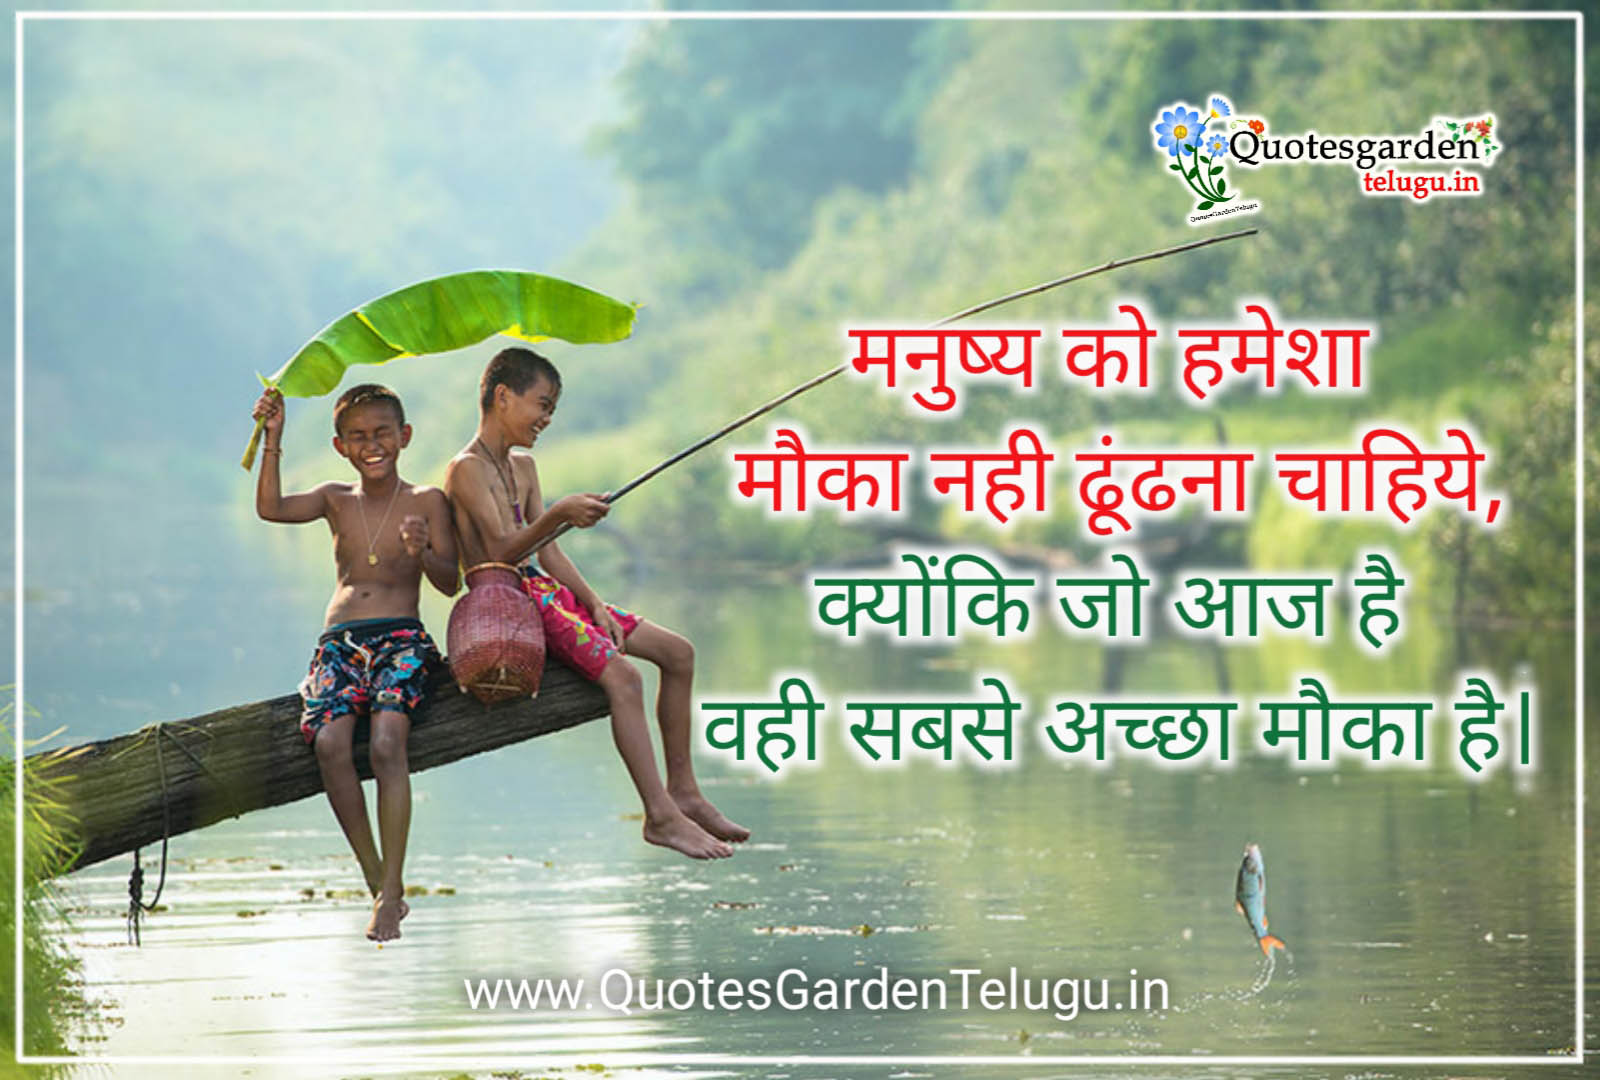 all time best motivational life quotes shayari in hindi pdf free ...